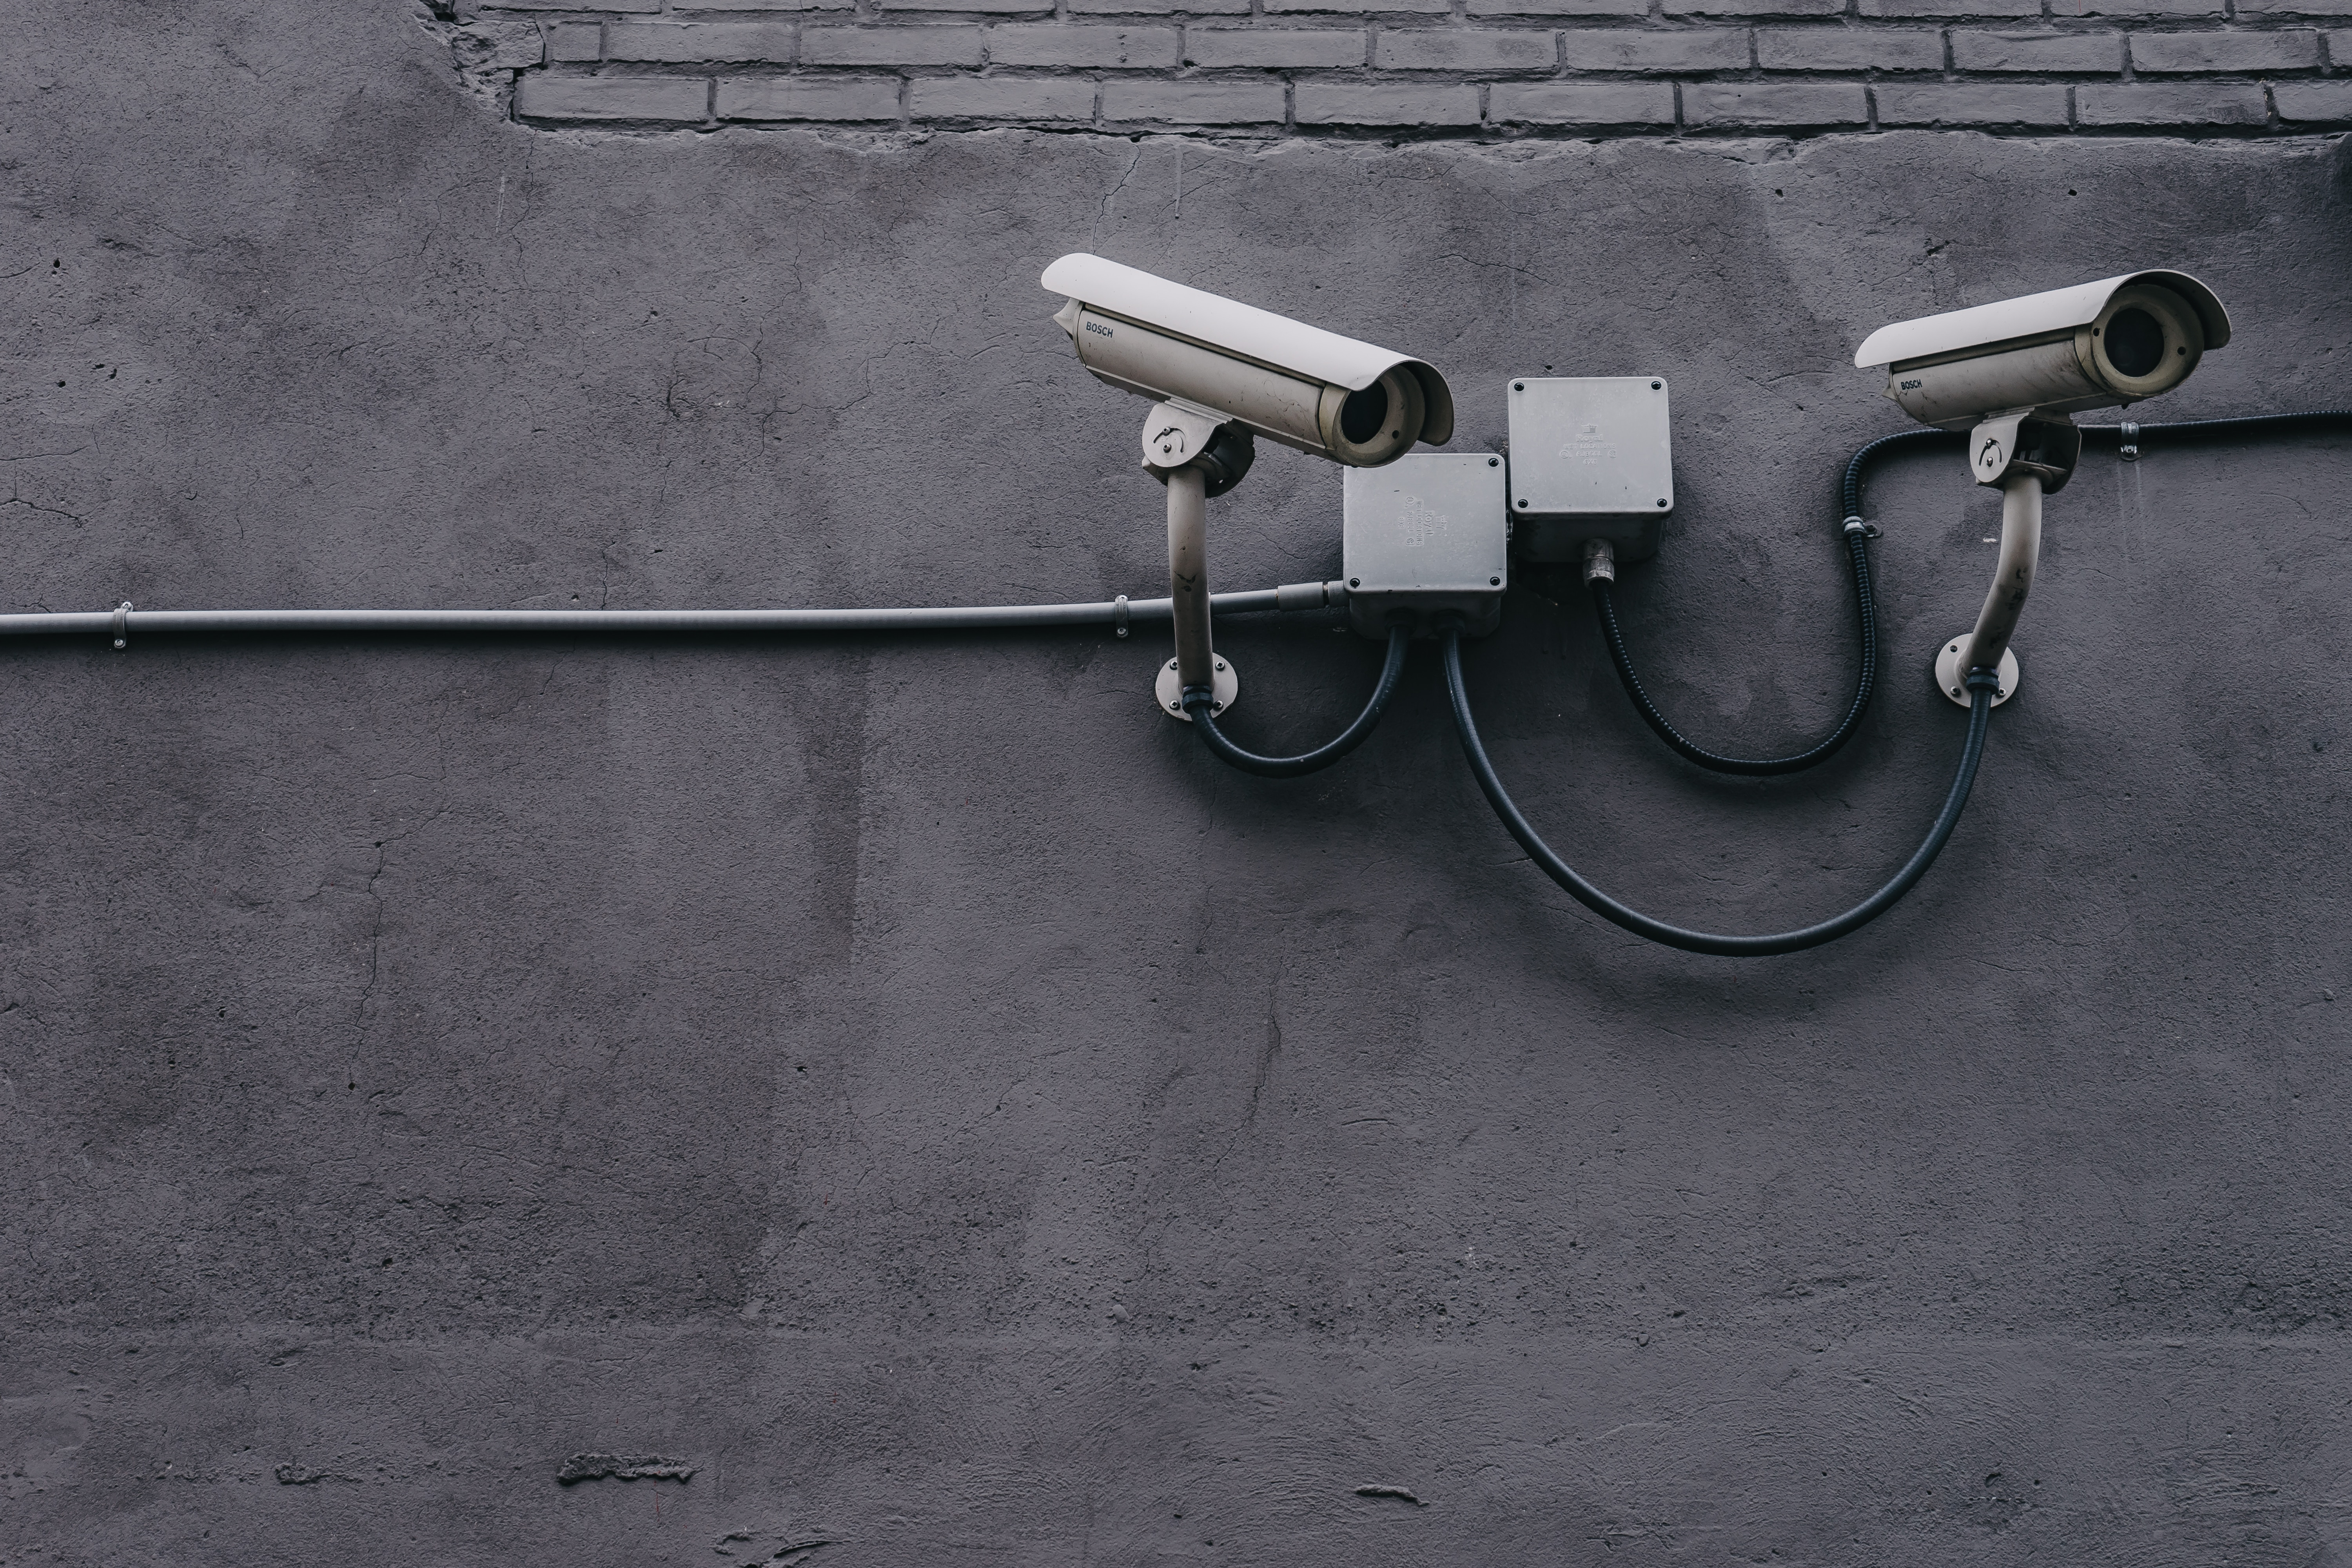 Surveillance Capitalism: Where Do We Go From Here?